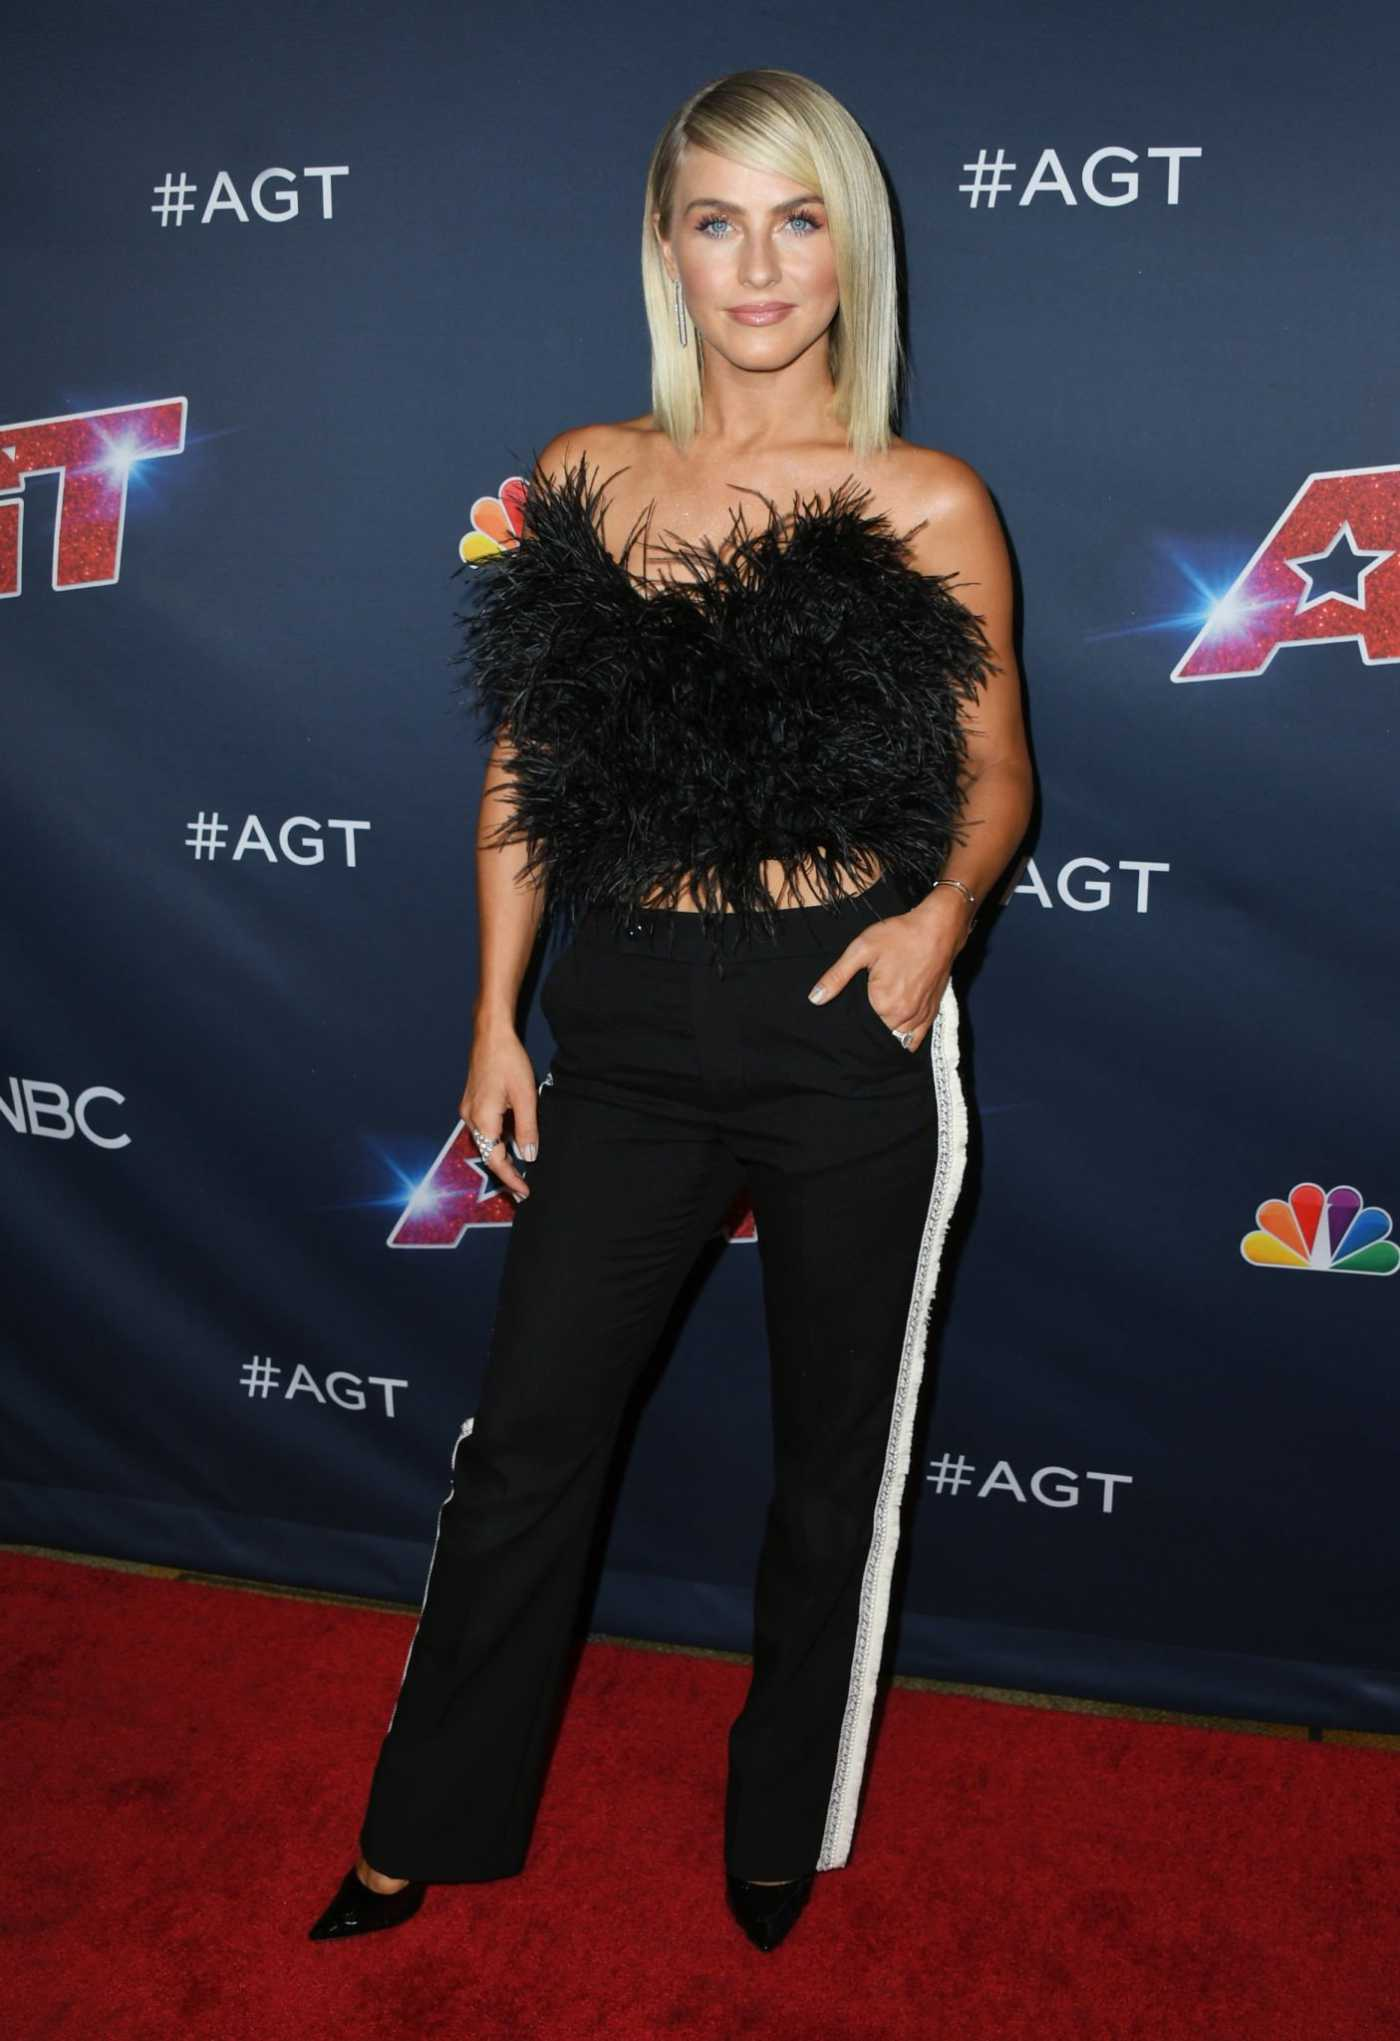 Julianne Hough Attends America's Got Talent Season 14 Live Show in Hollywood 09/03/2019